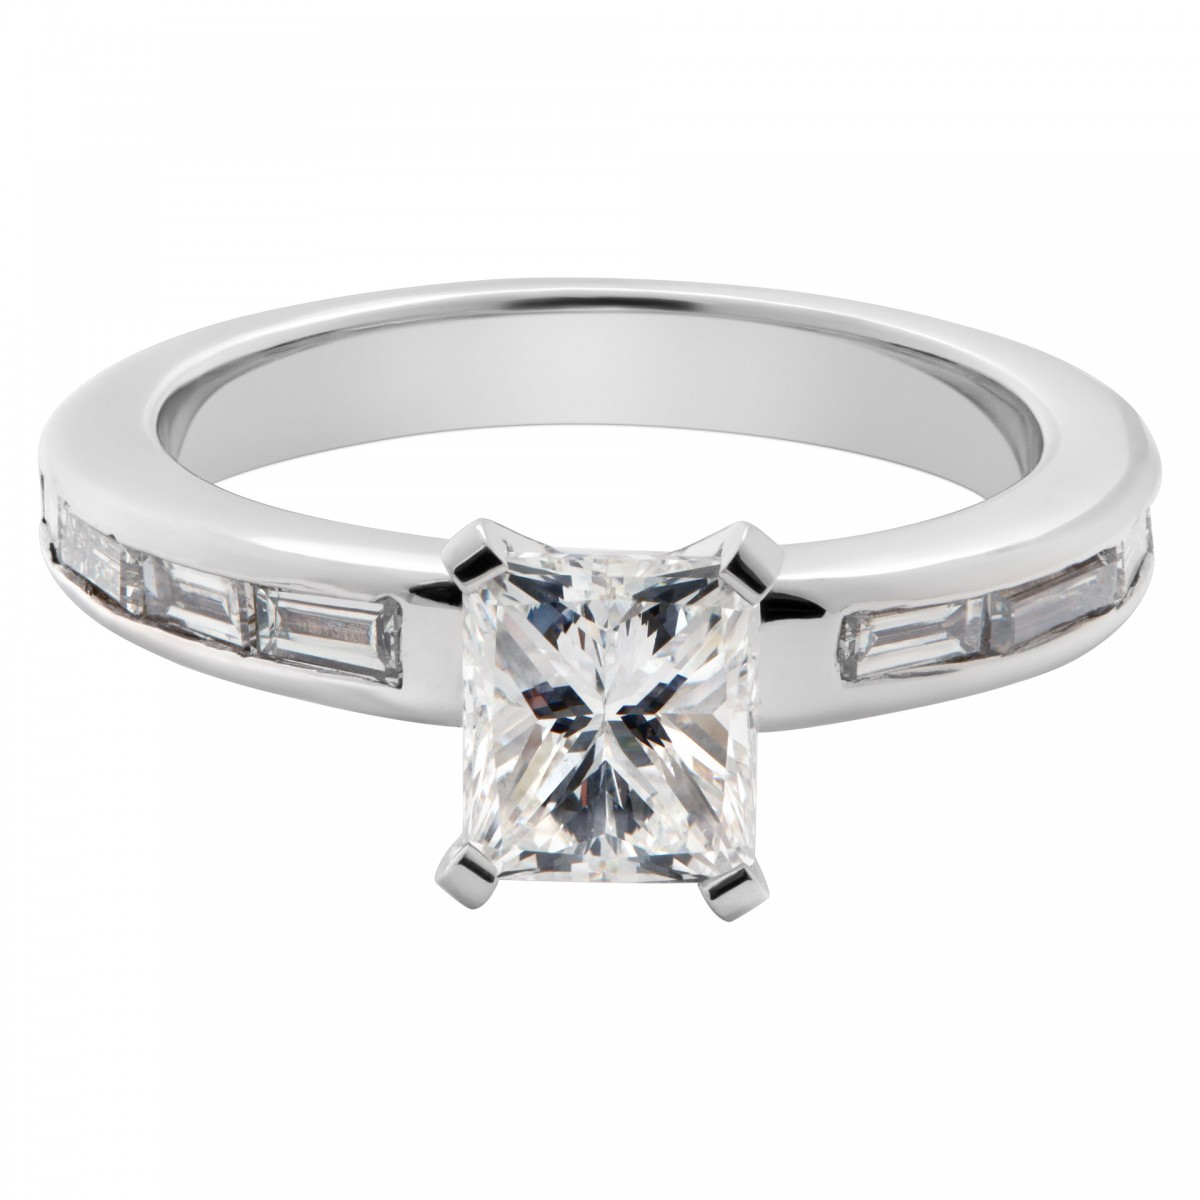 round or rings choosing from princess cushion engagement cut rectangular